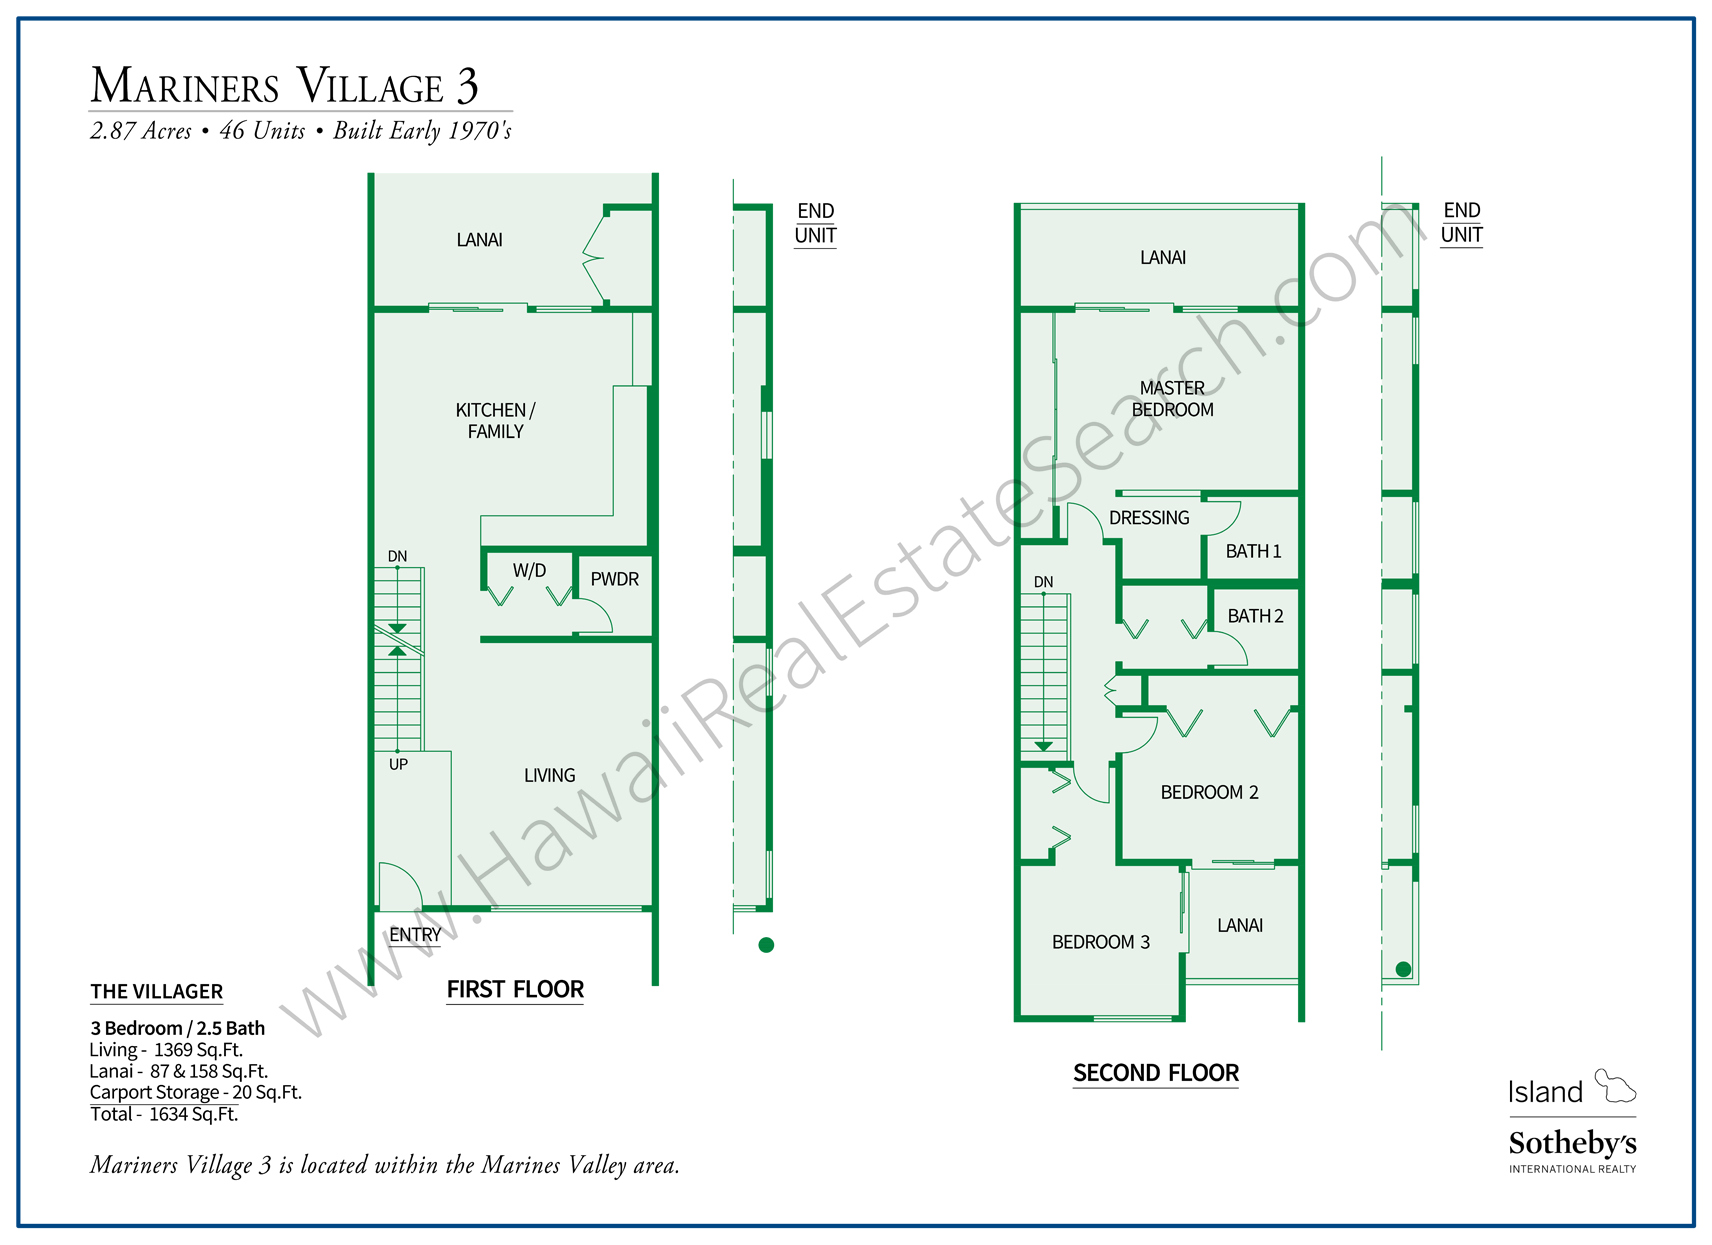 Mariners Village Floor Plan The Villager